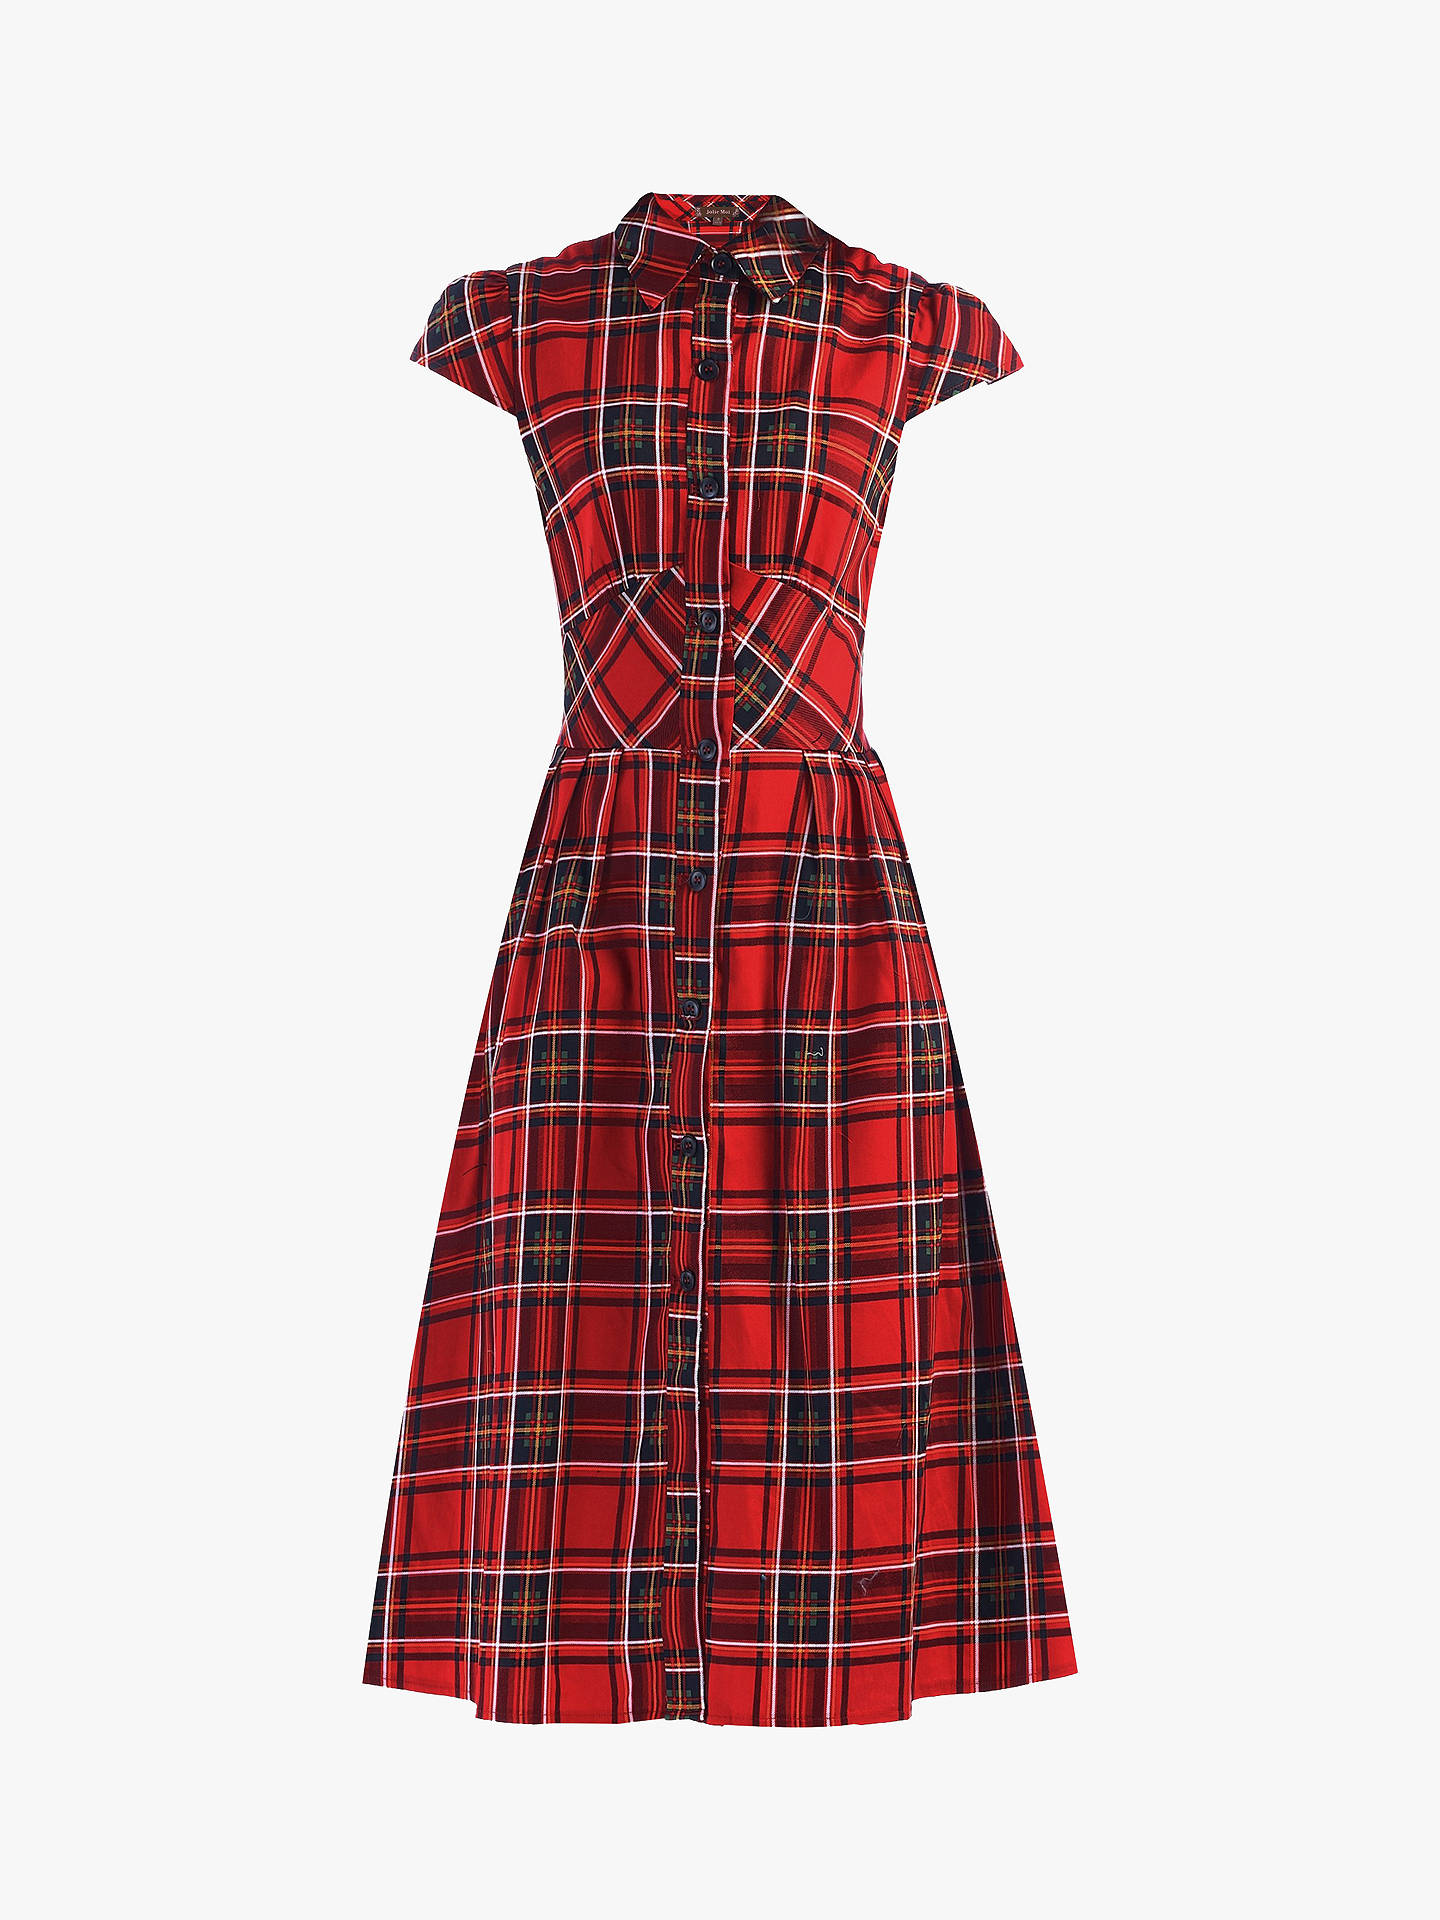 Buy Jolie Moi Check Print Shirt Dress, Red/Amber, 10 Online at johnlewis.com